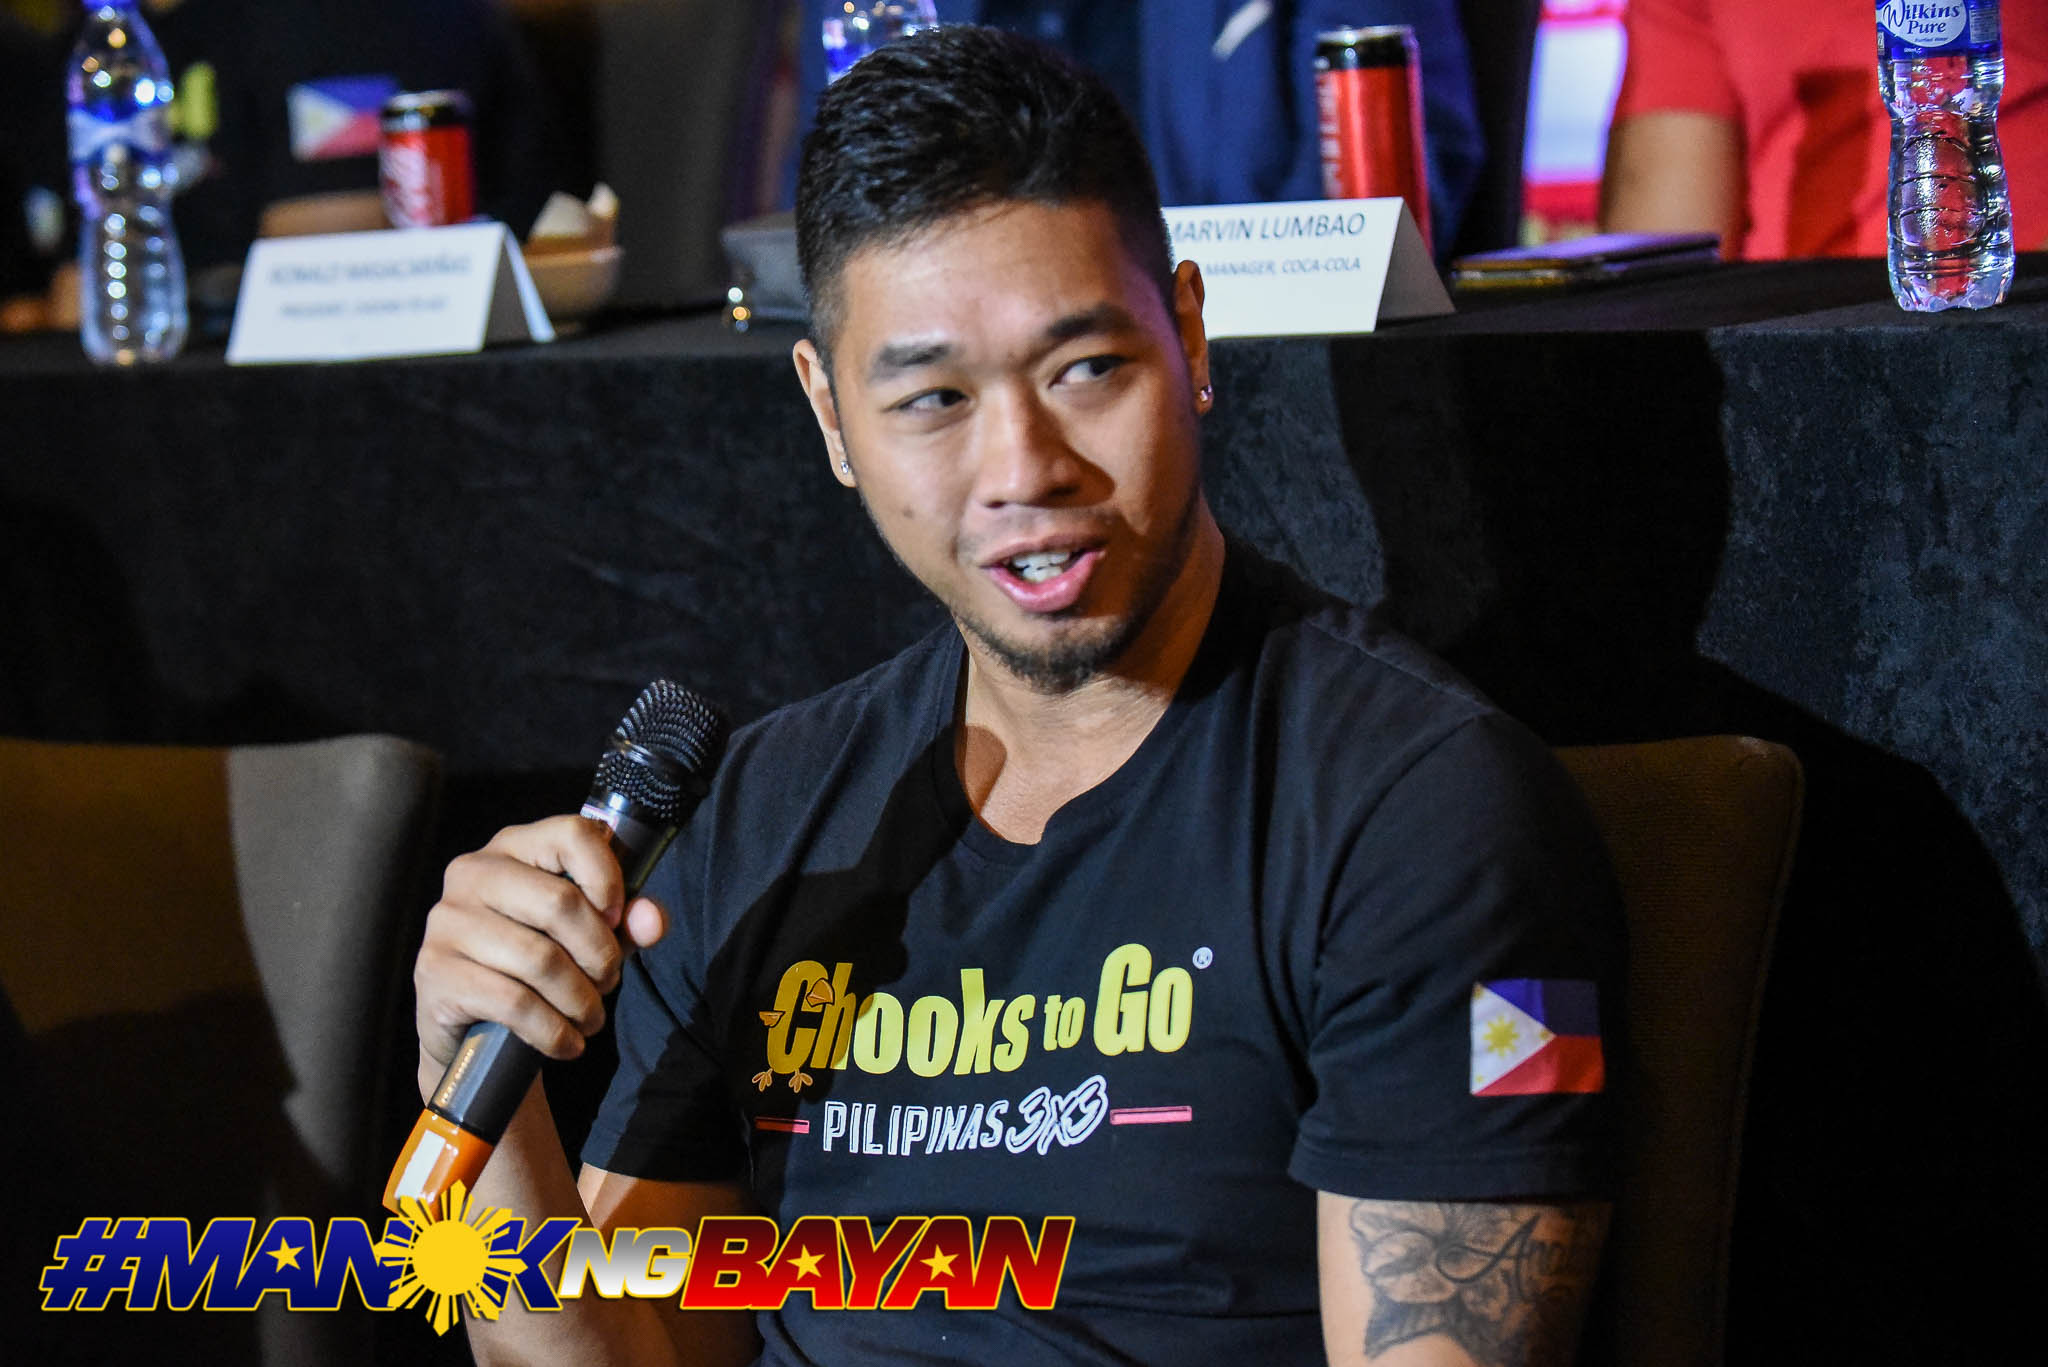 Tiebreaker Times From 'getting free dinners' to playing in Moscow: Chris De Chavez finally has his break 3x3 Basketball Chooks-to-Go Pilipinas 3x3 News  Chris De Chavez Balanga Chooks 2019 FIBA Moscow Tinkoff Challenger 2019 Chooks-to-Go Pilipinas 3x3 Season